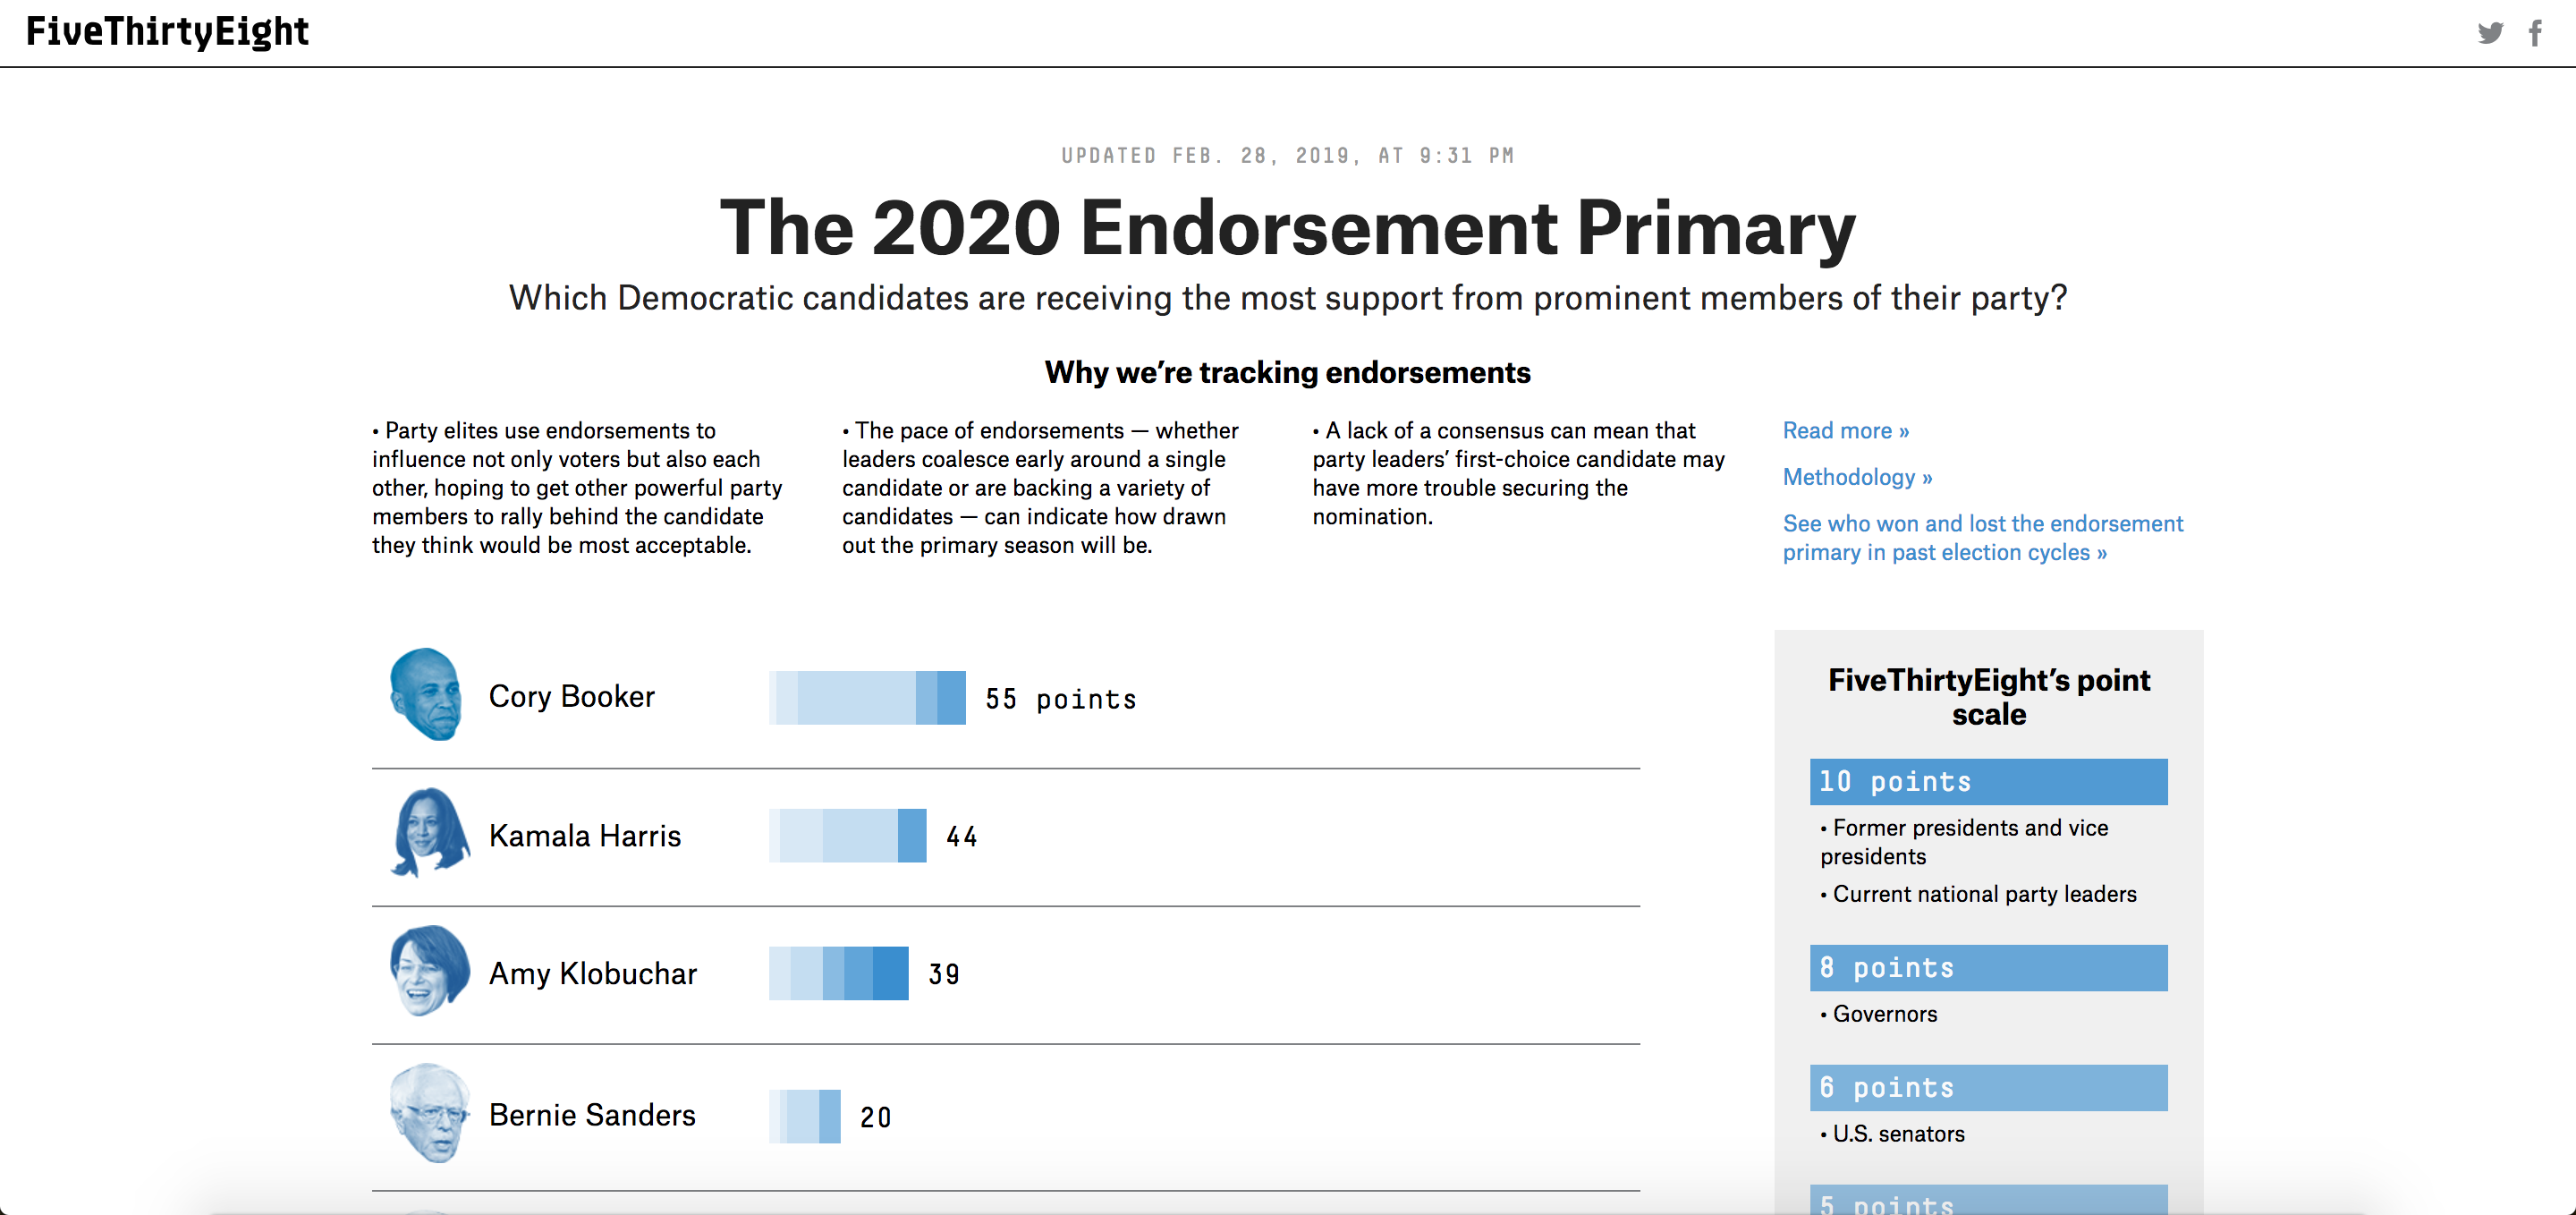 The 2020 Endorsement Primary by Fivethirtyeight